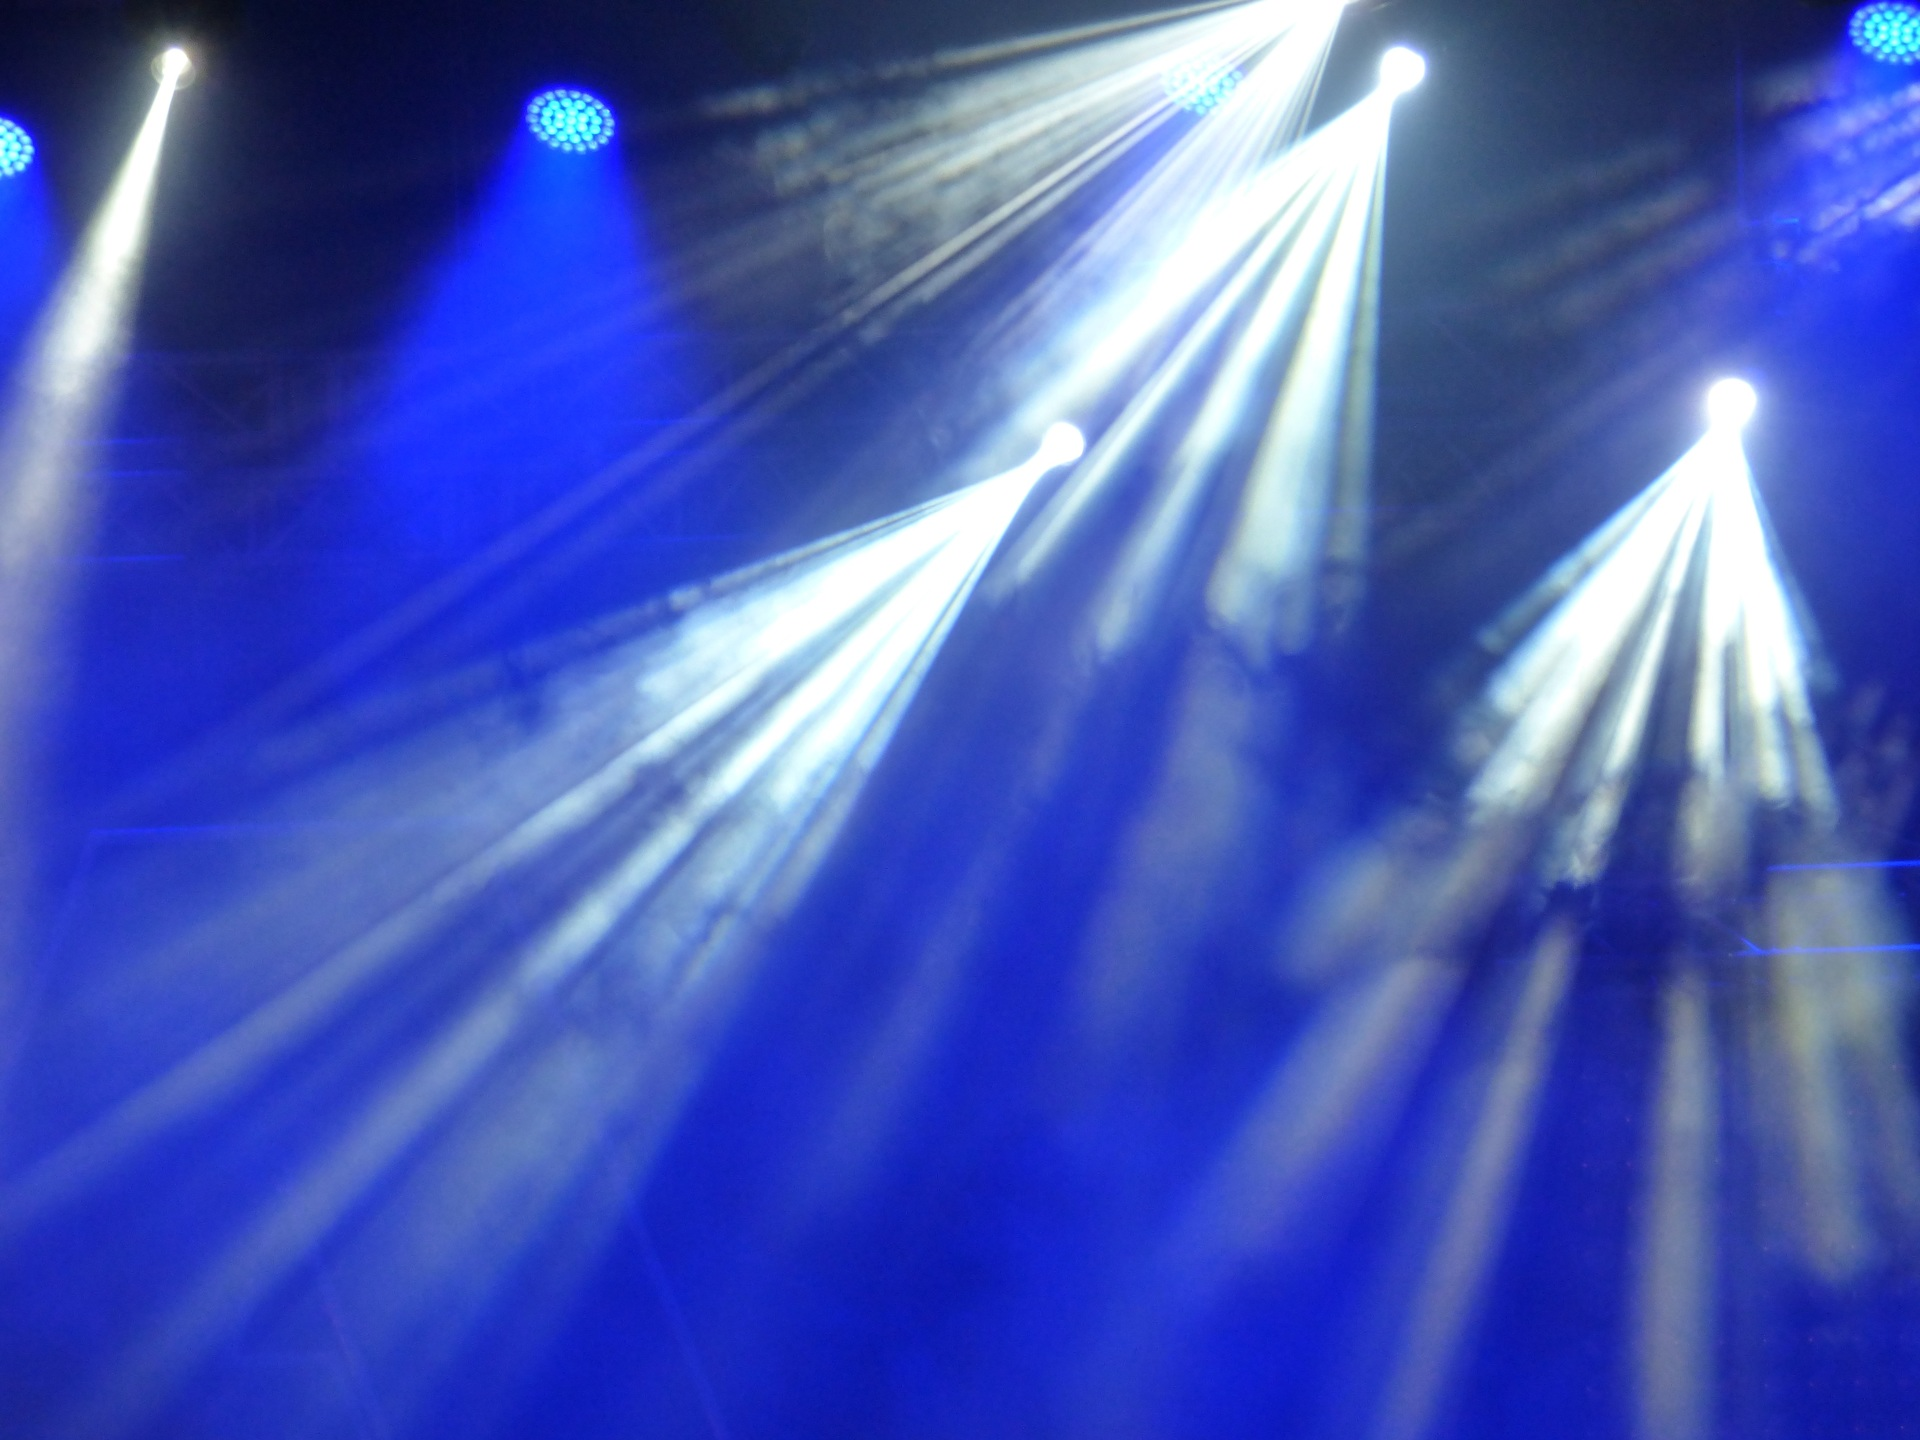 light-sunlight-concert-reflection-blue-colorful-1294479-pxhere.com